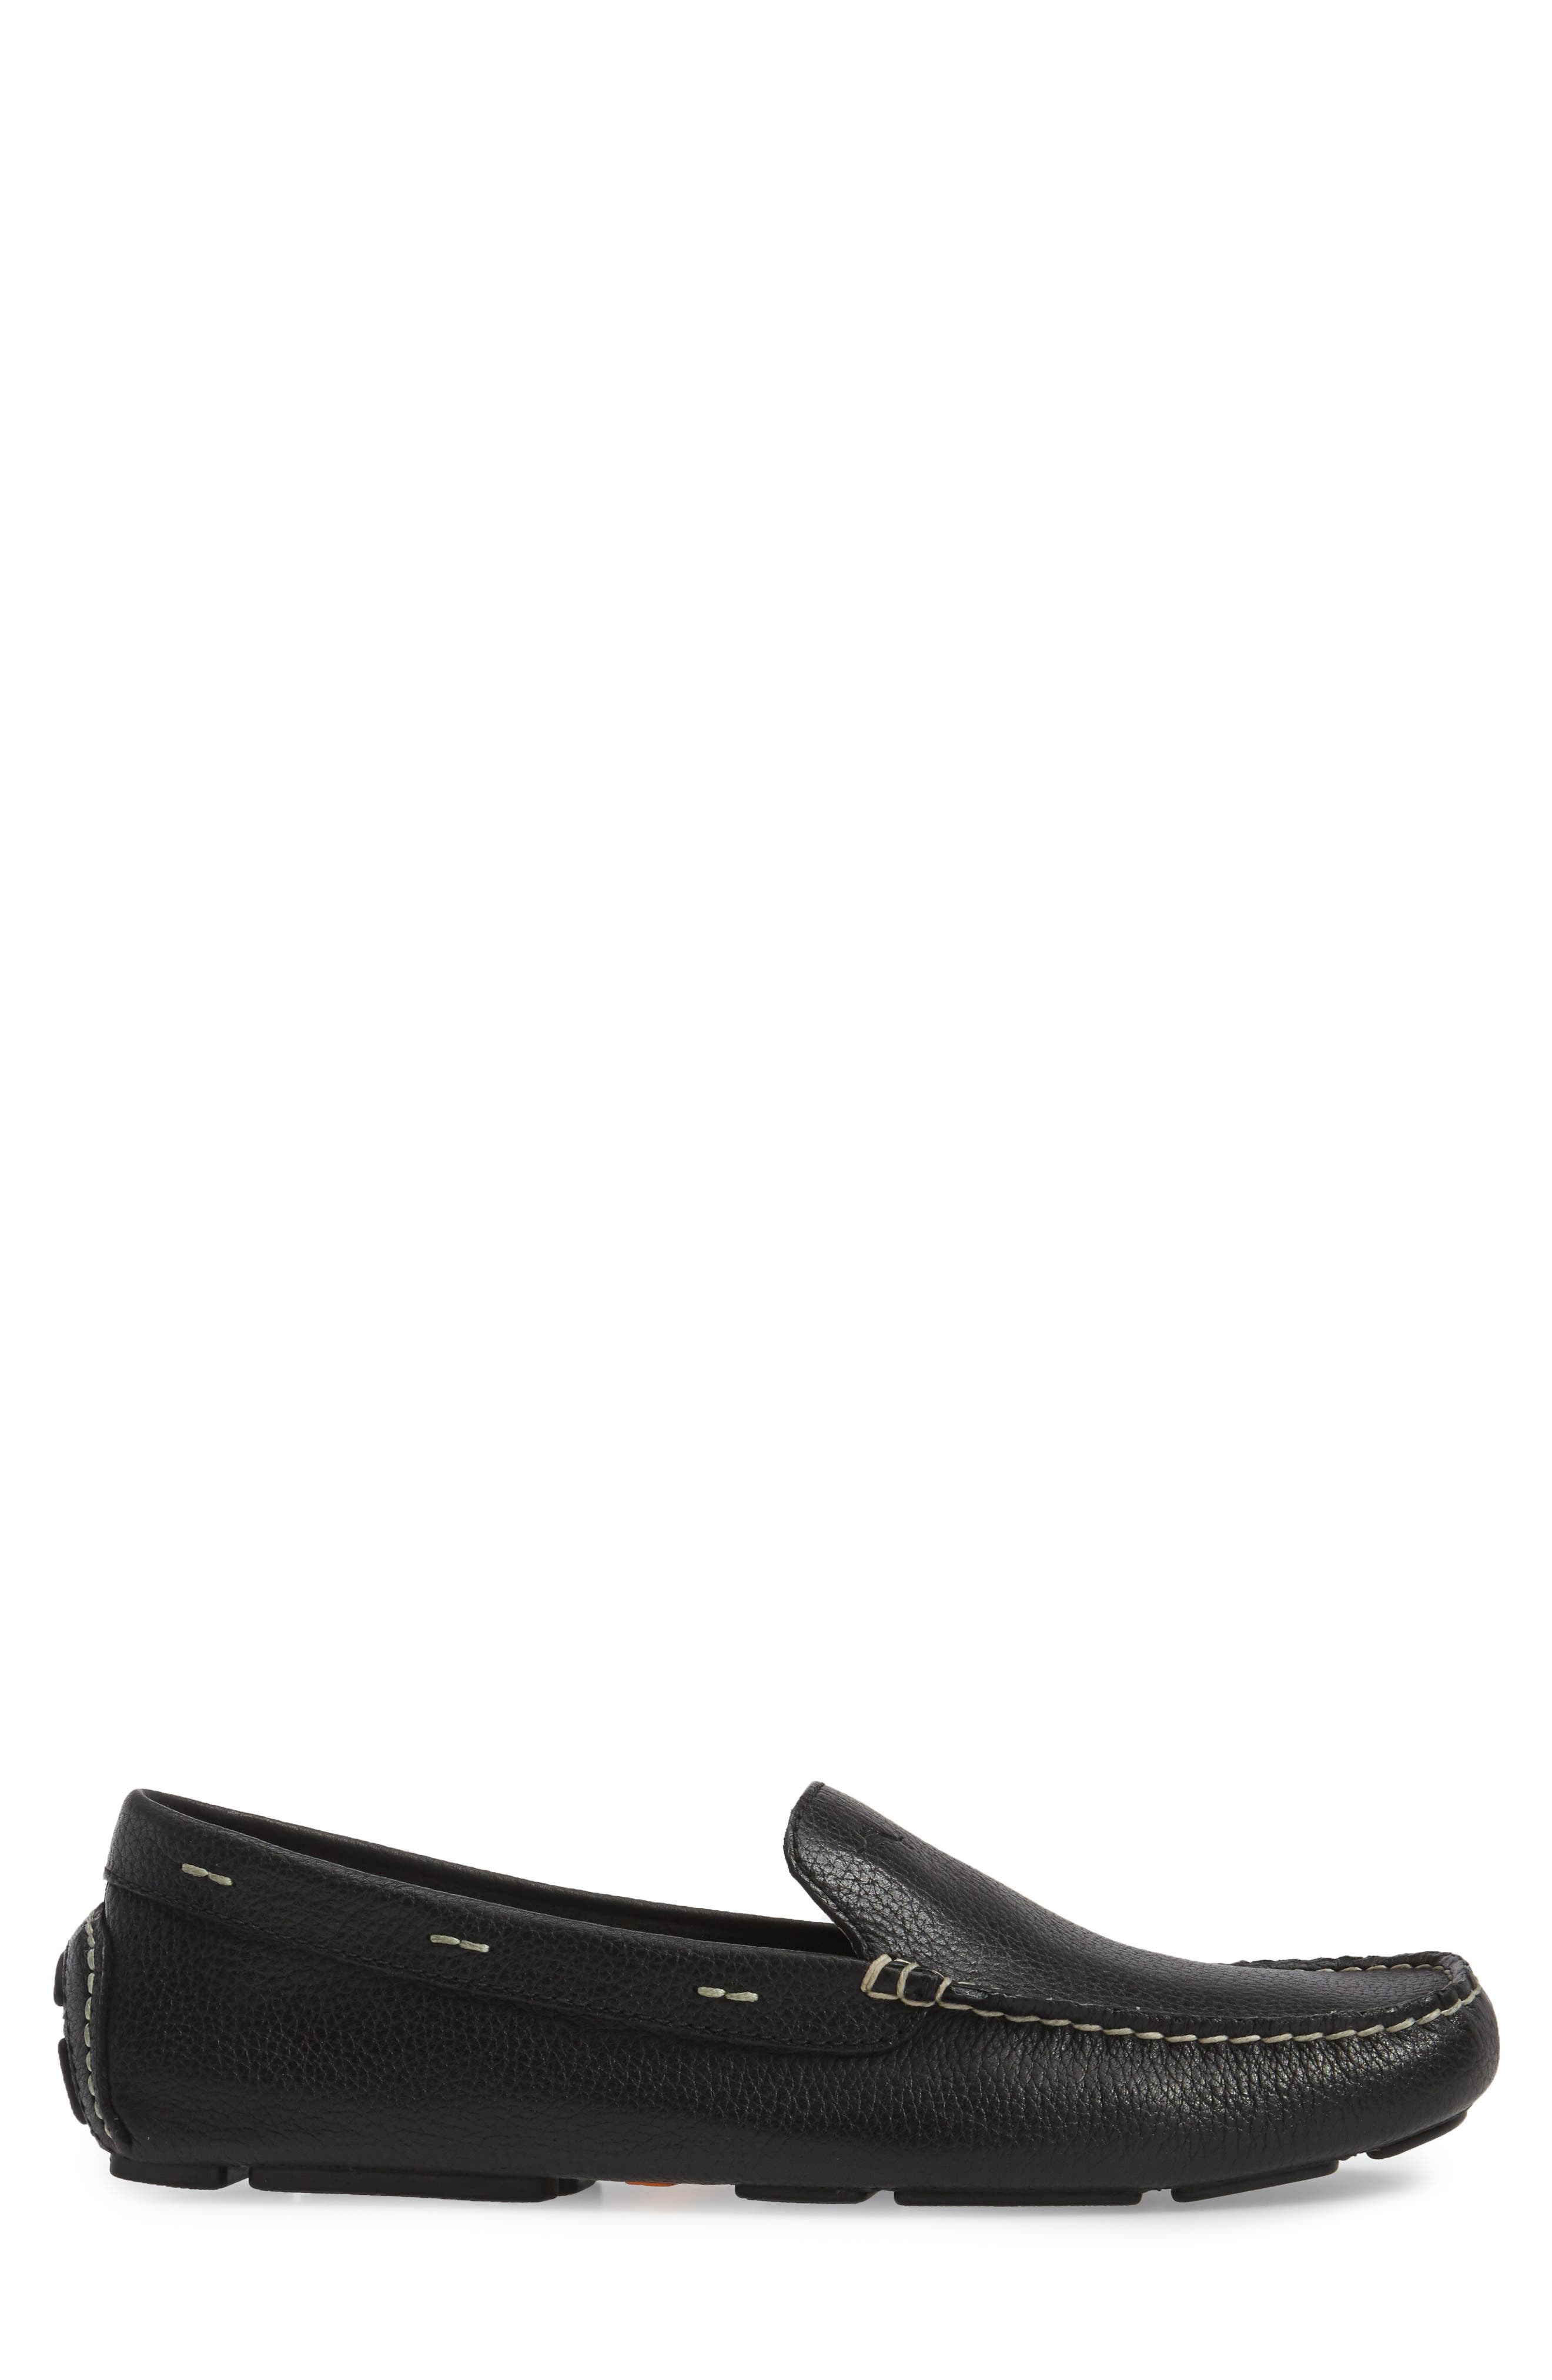 Pagota Driving Loafer,                             Alternate thumbnail 16, color,